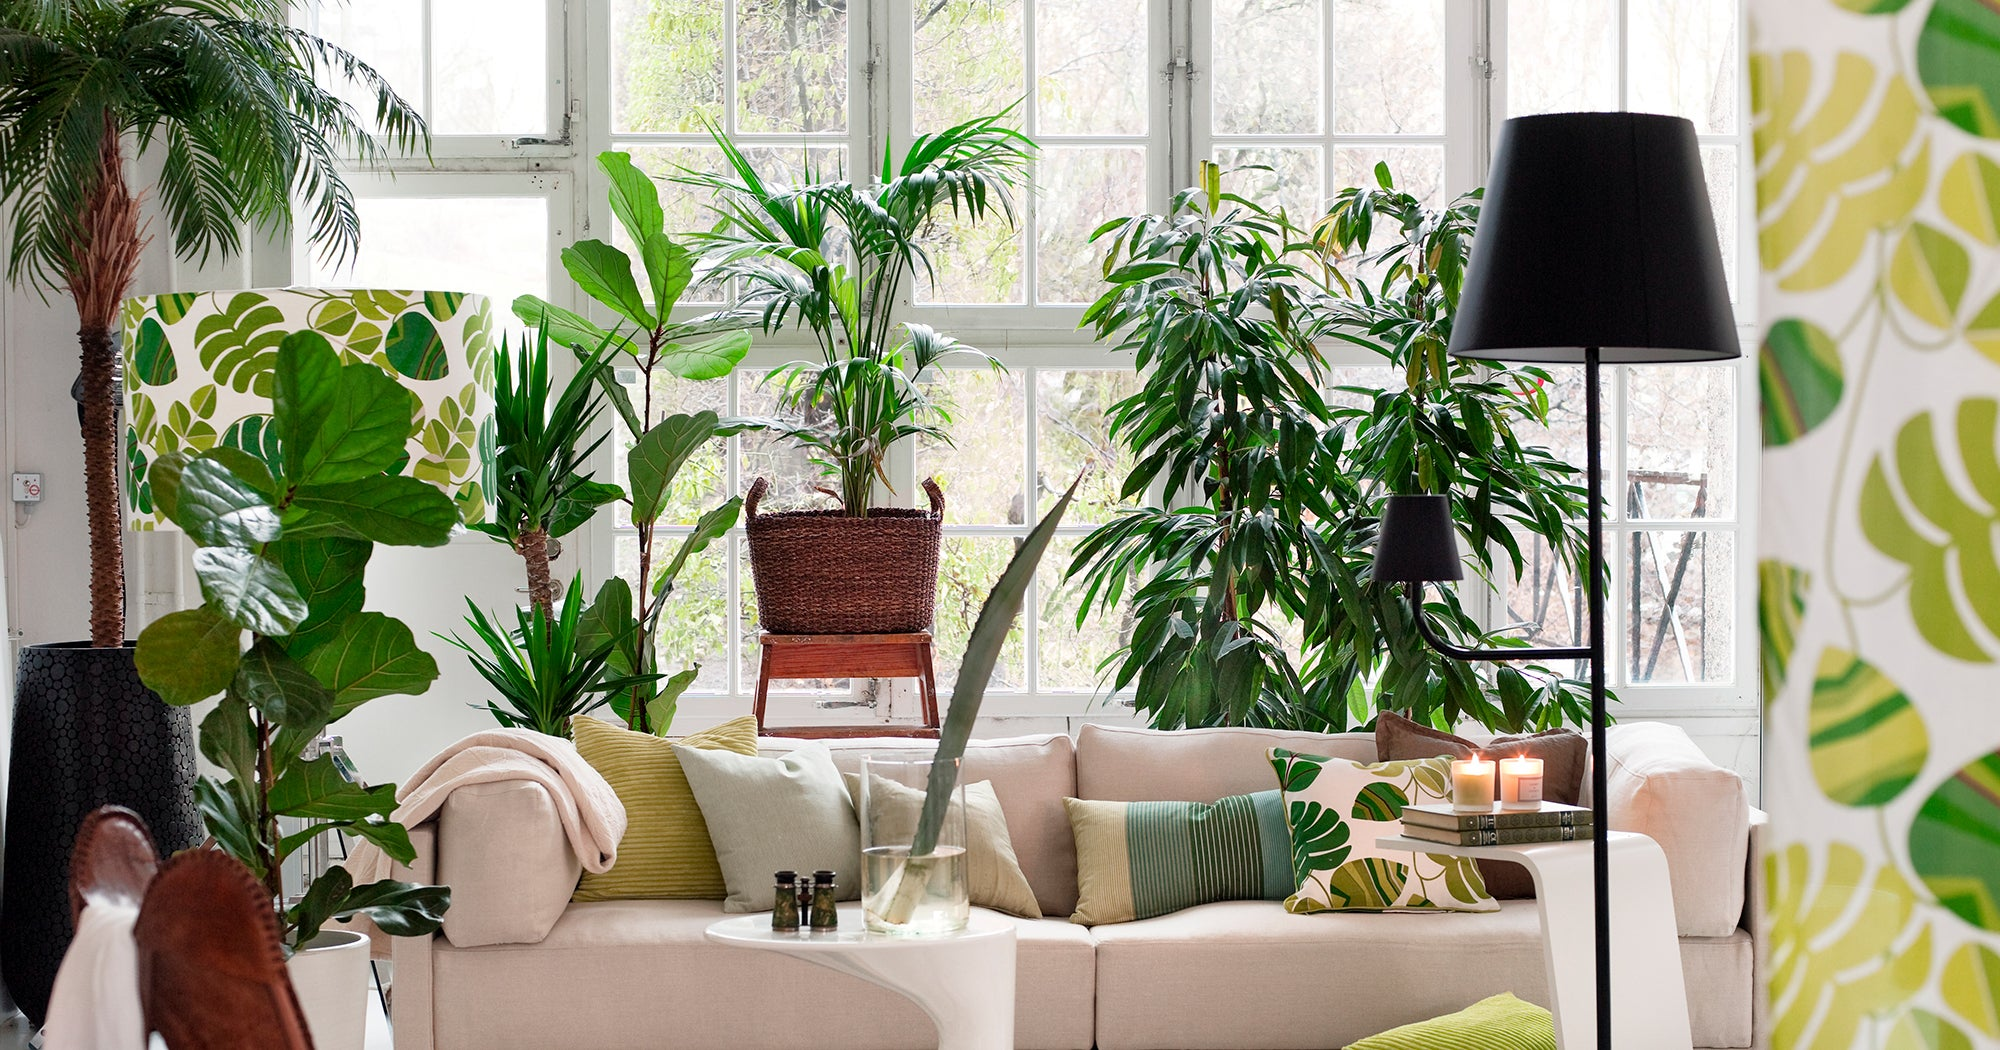 Top Home Trends Of 2019 For Decor Inspiration In 2020